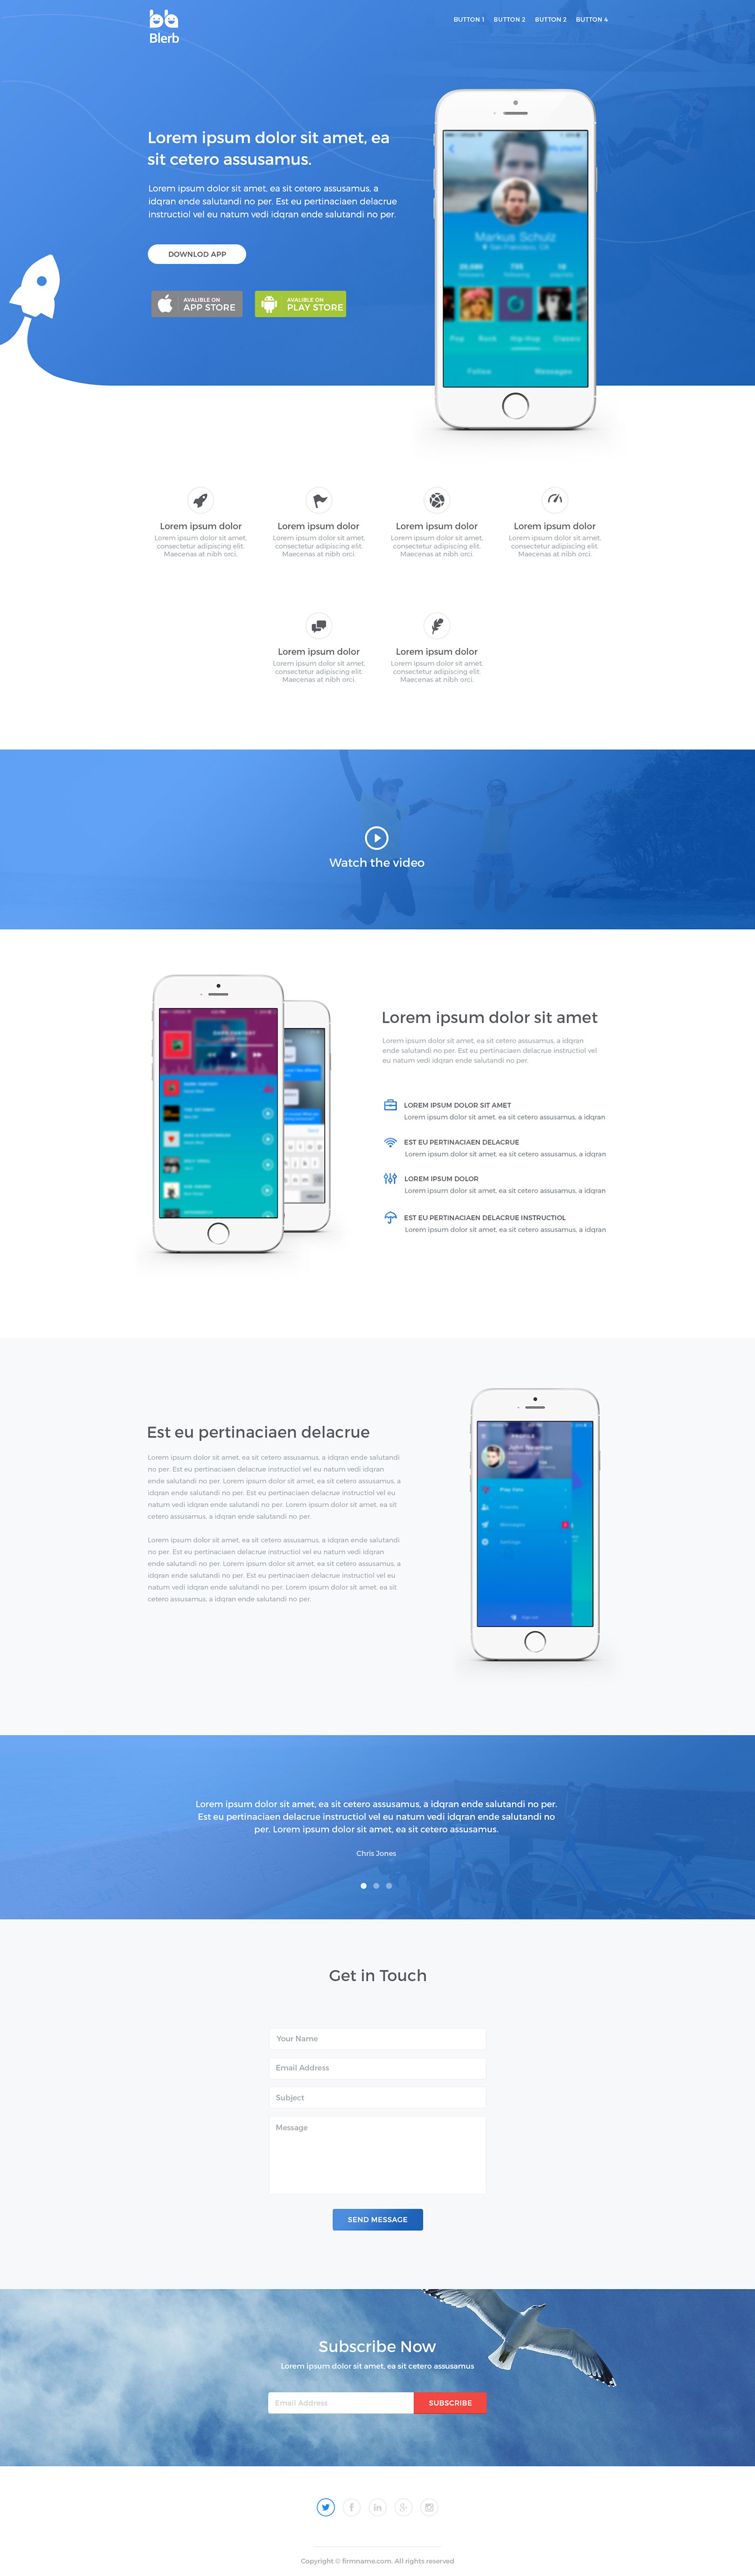 Blerb - Landing Page - Web-Design - Merehead Development